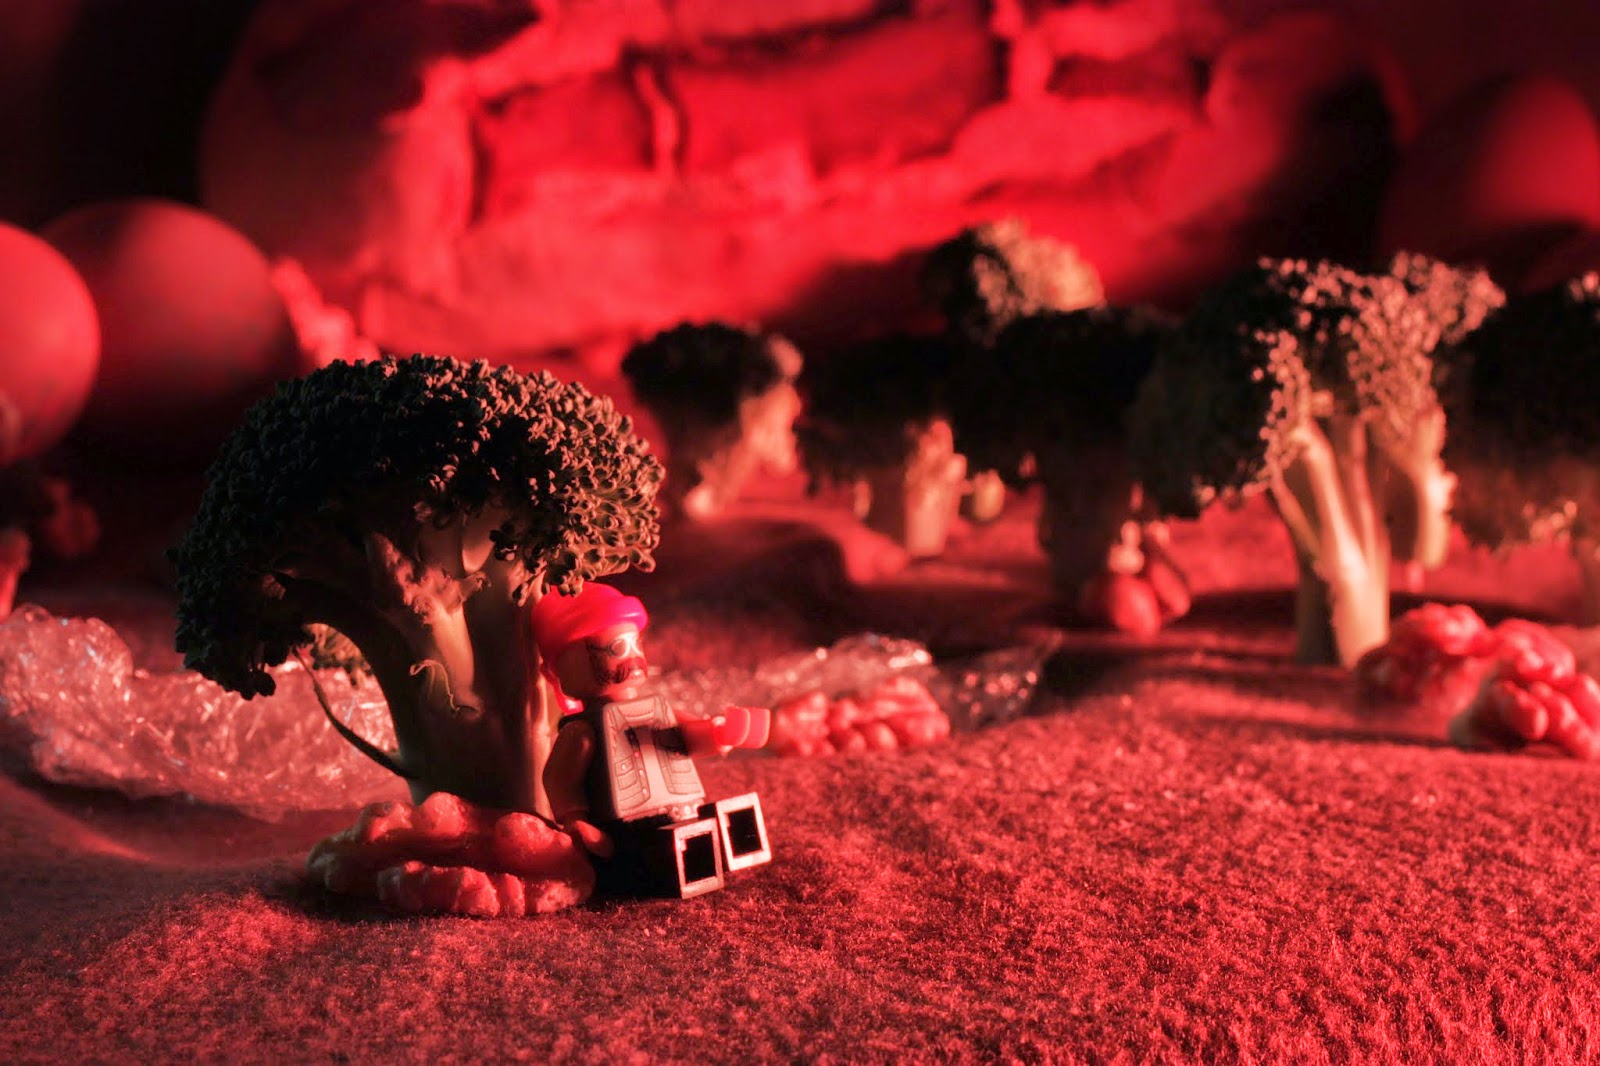 Lego man sitting next to a broccoli tree with egg and bread hills behind. All under a red light.